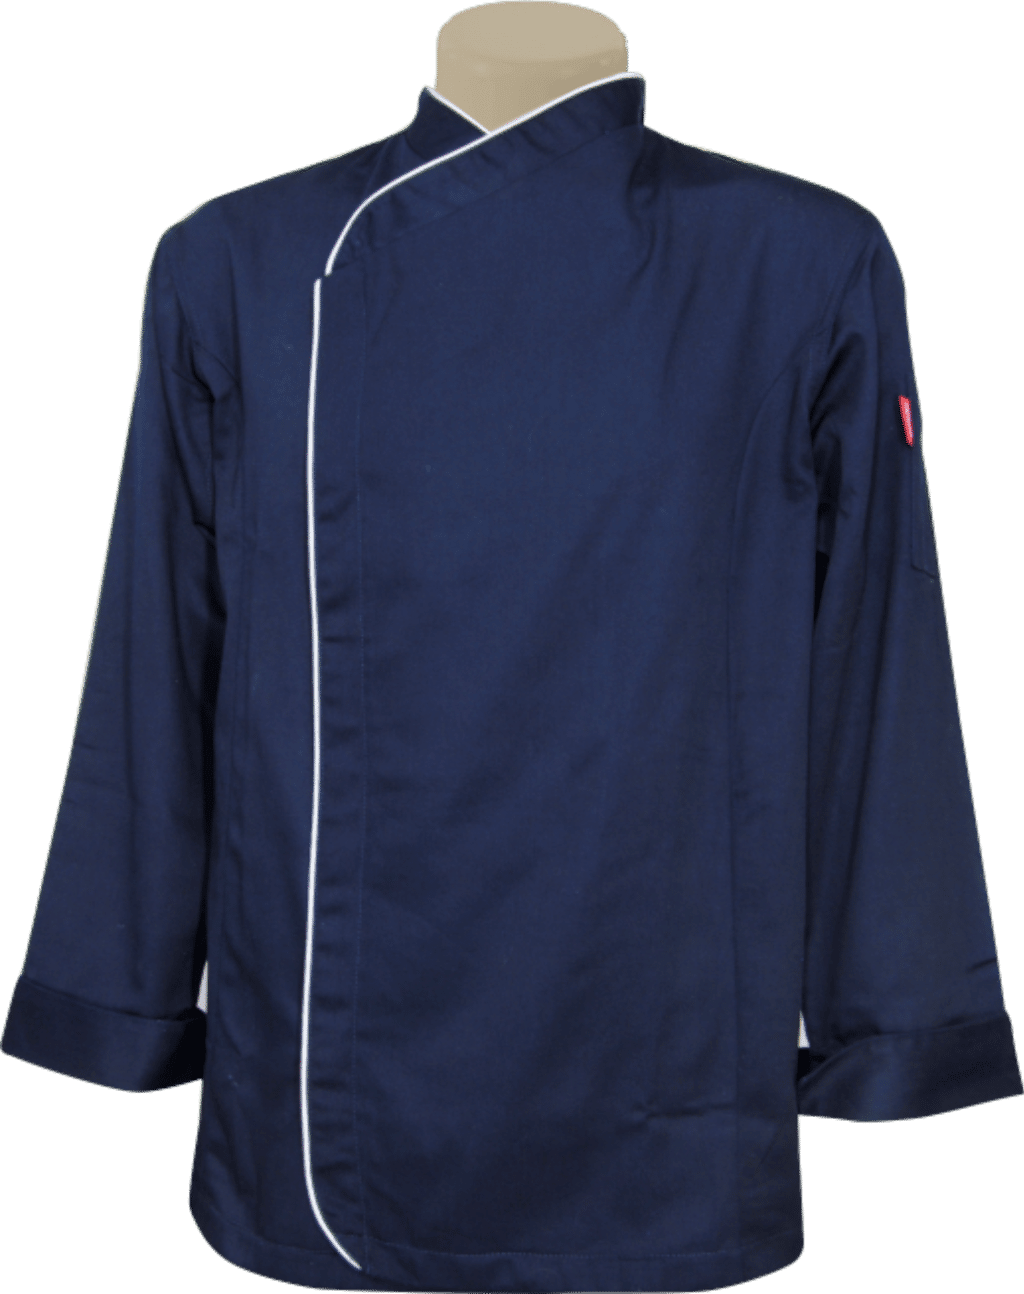 EC49 - EXECUTIVE CHEFS JACKET CONCEALED BUTTONS L/S